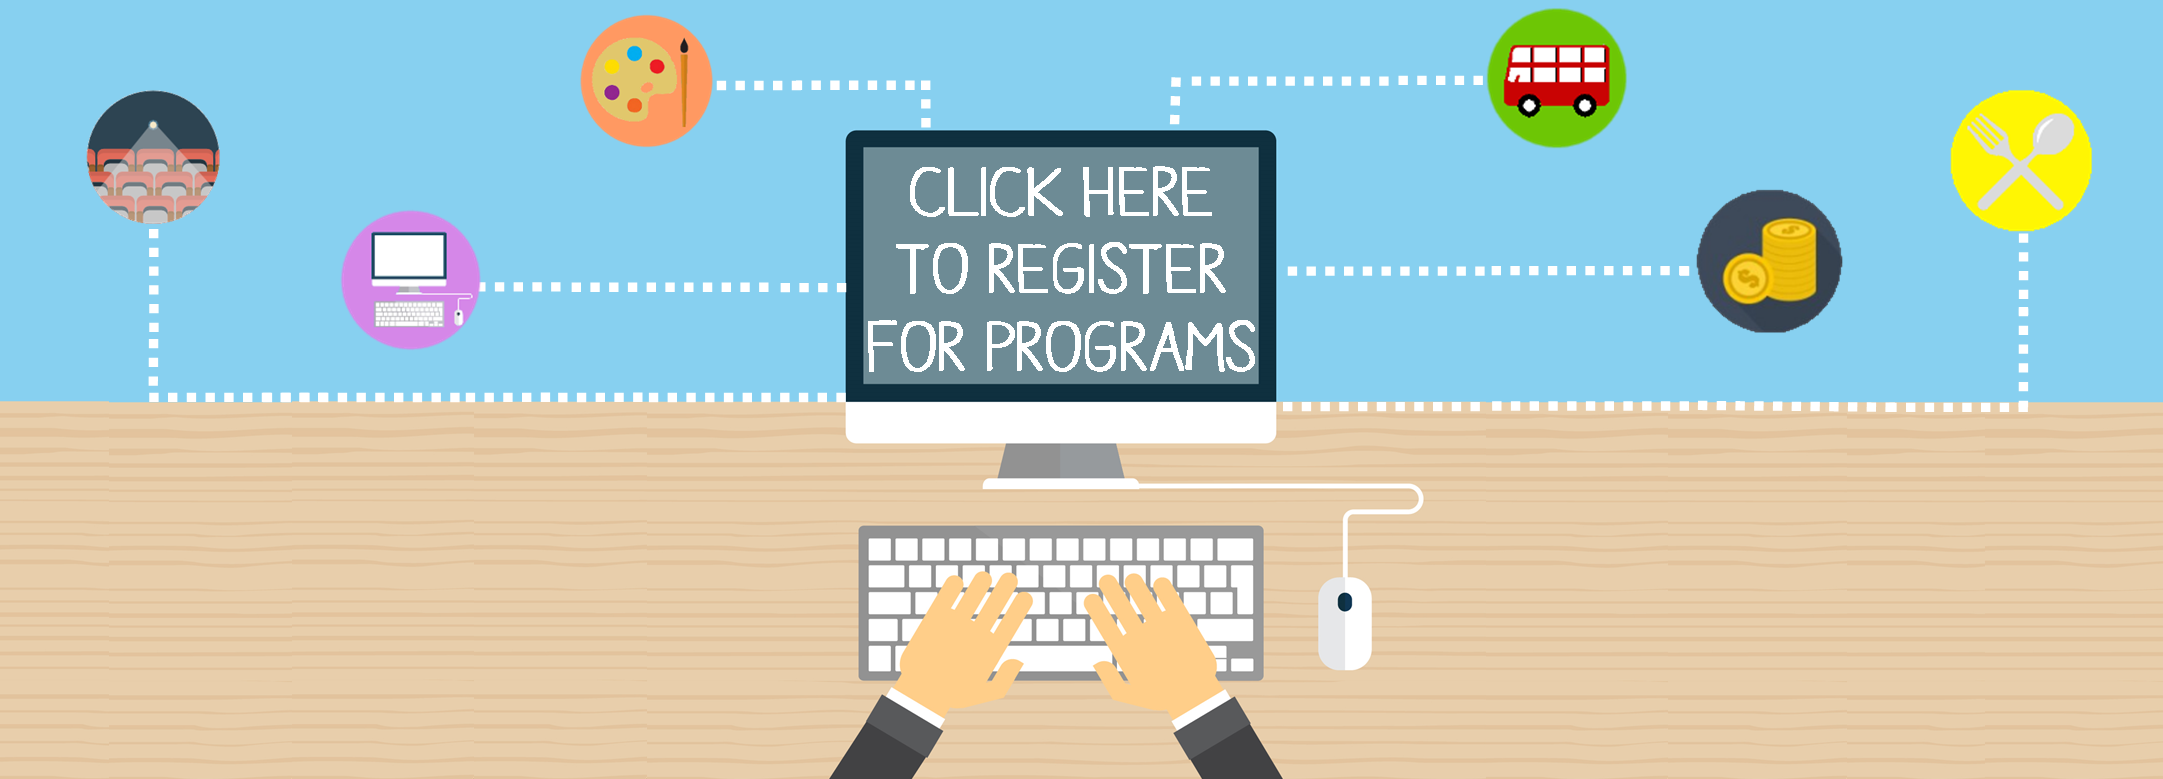 register-for-programs